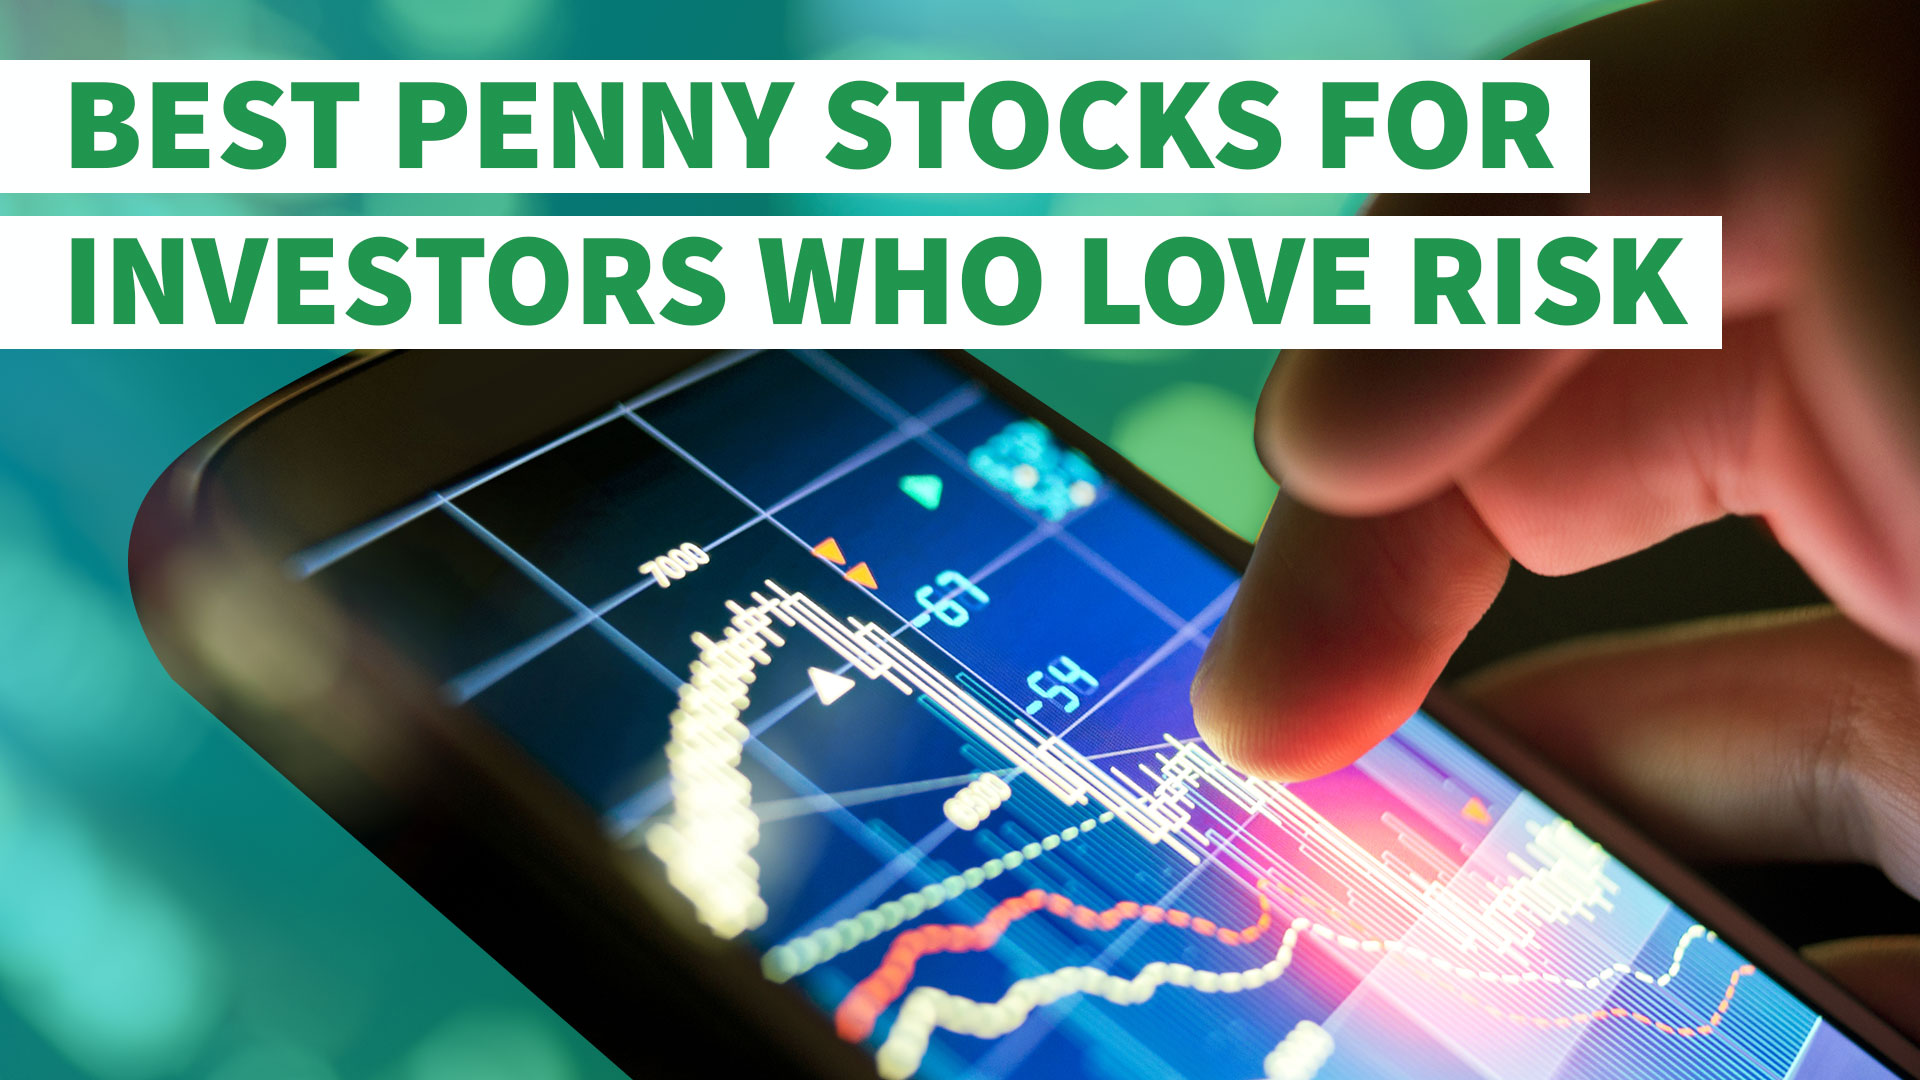 Credit Report Companies >> 10 Best Penny Stocks for Investors Who Love Risk | GOBankingRates